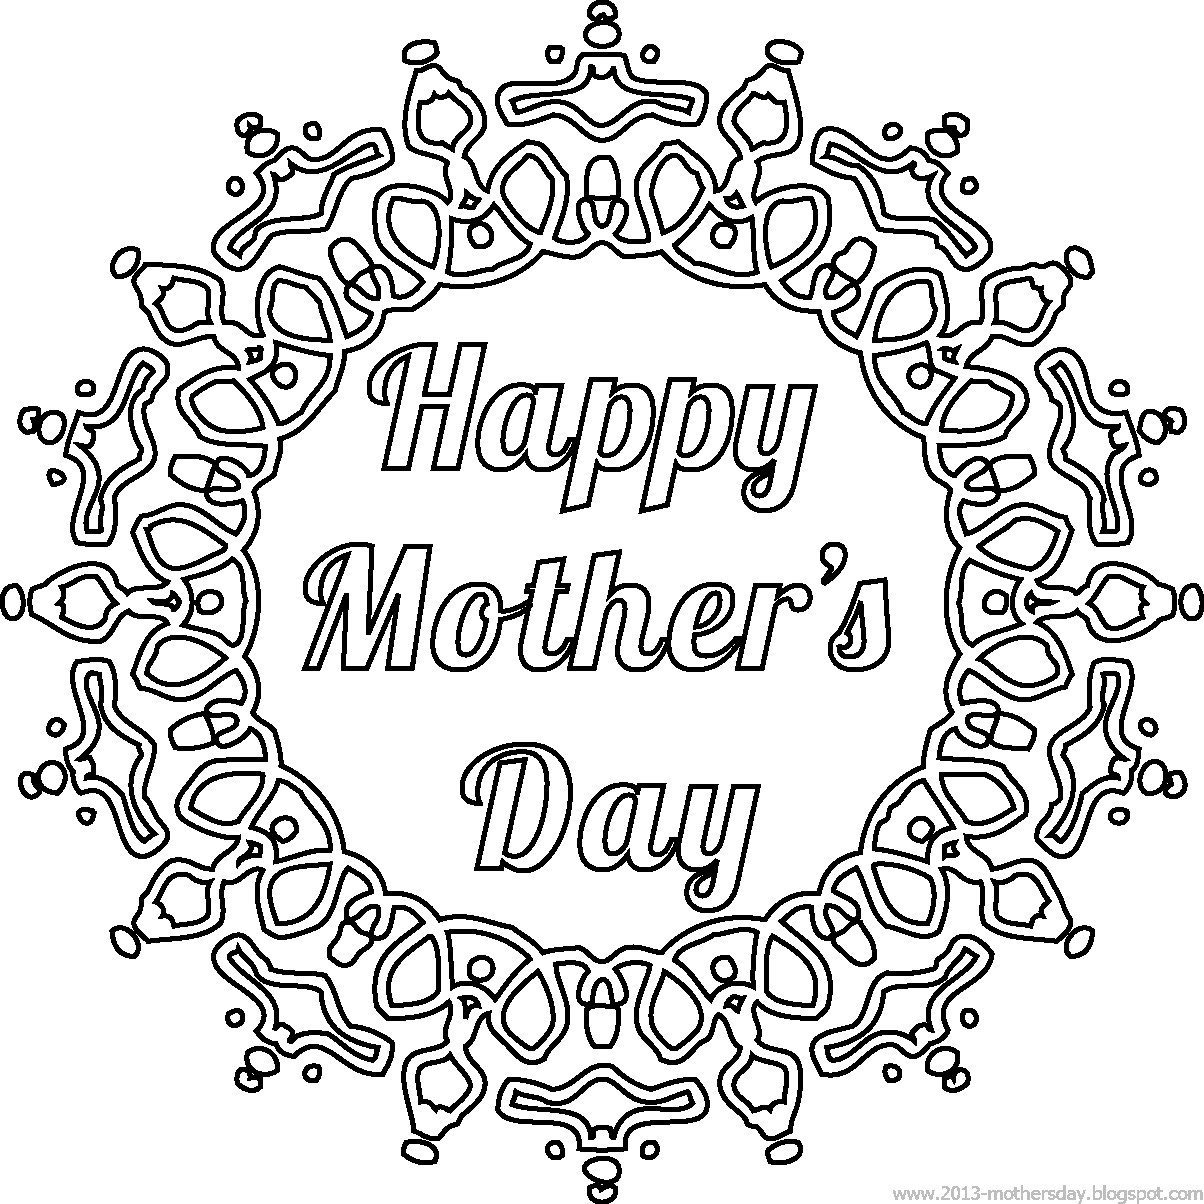 4 free printable Mother's Day ecards to color ...  |Happy Mothers Day Certificate Printables